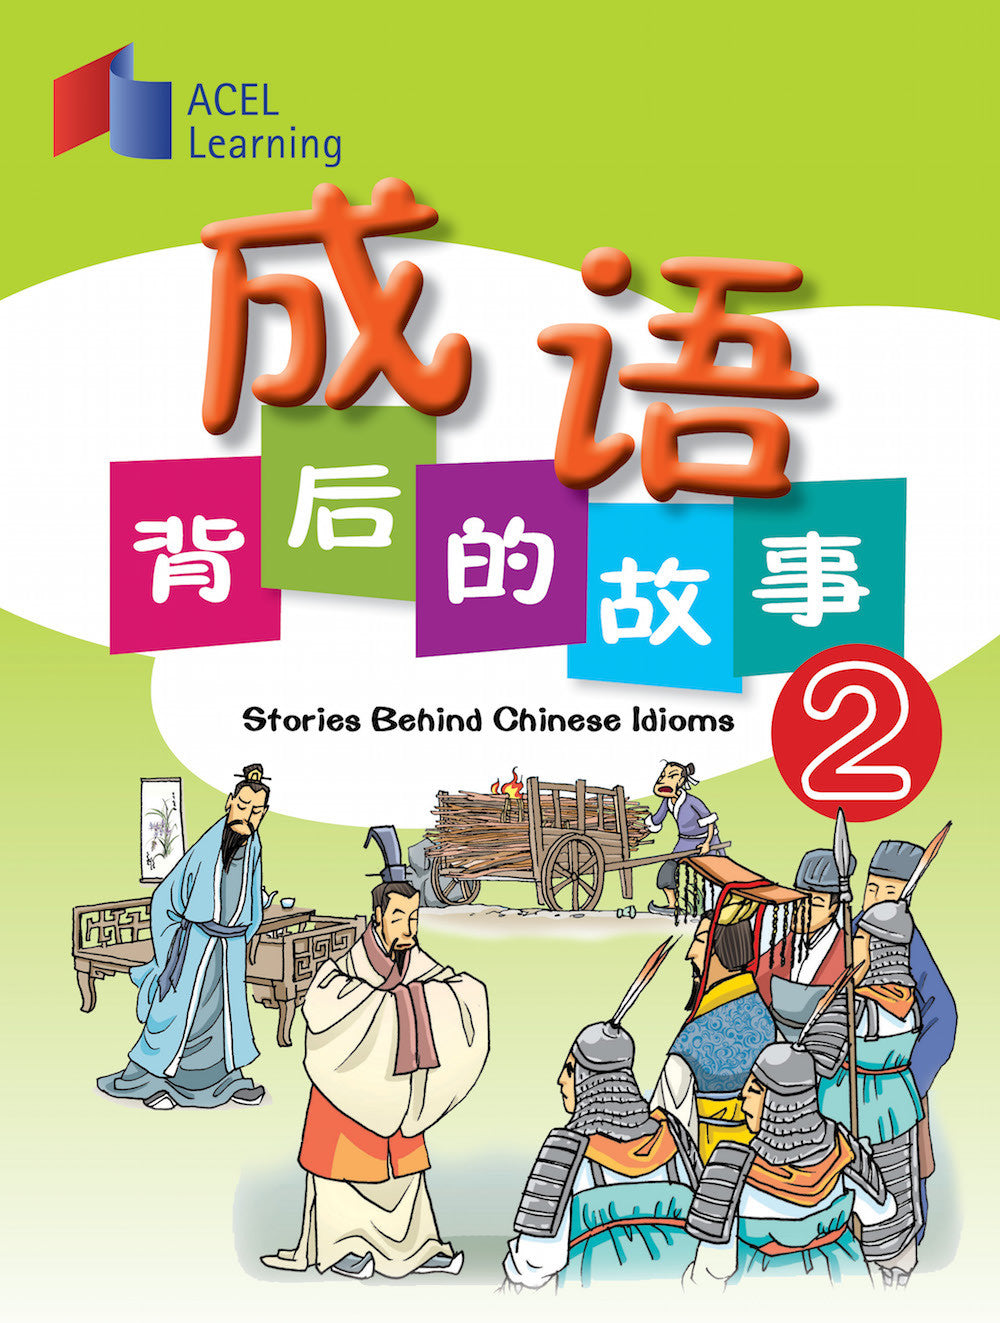 成语背后的故事2 (Stories Behind Chinese Idioms 2)